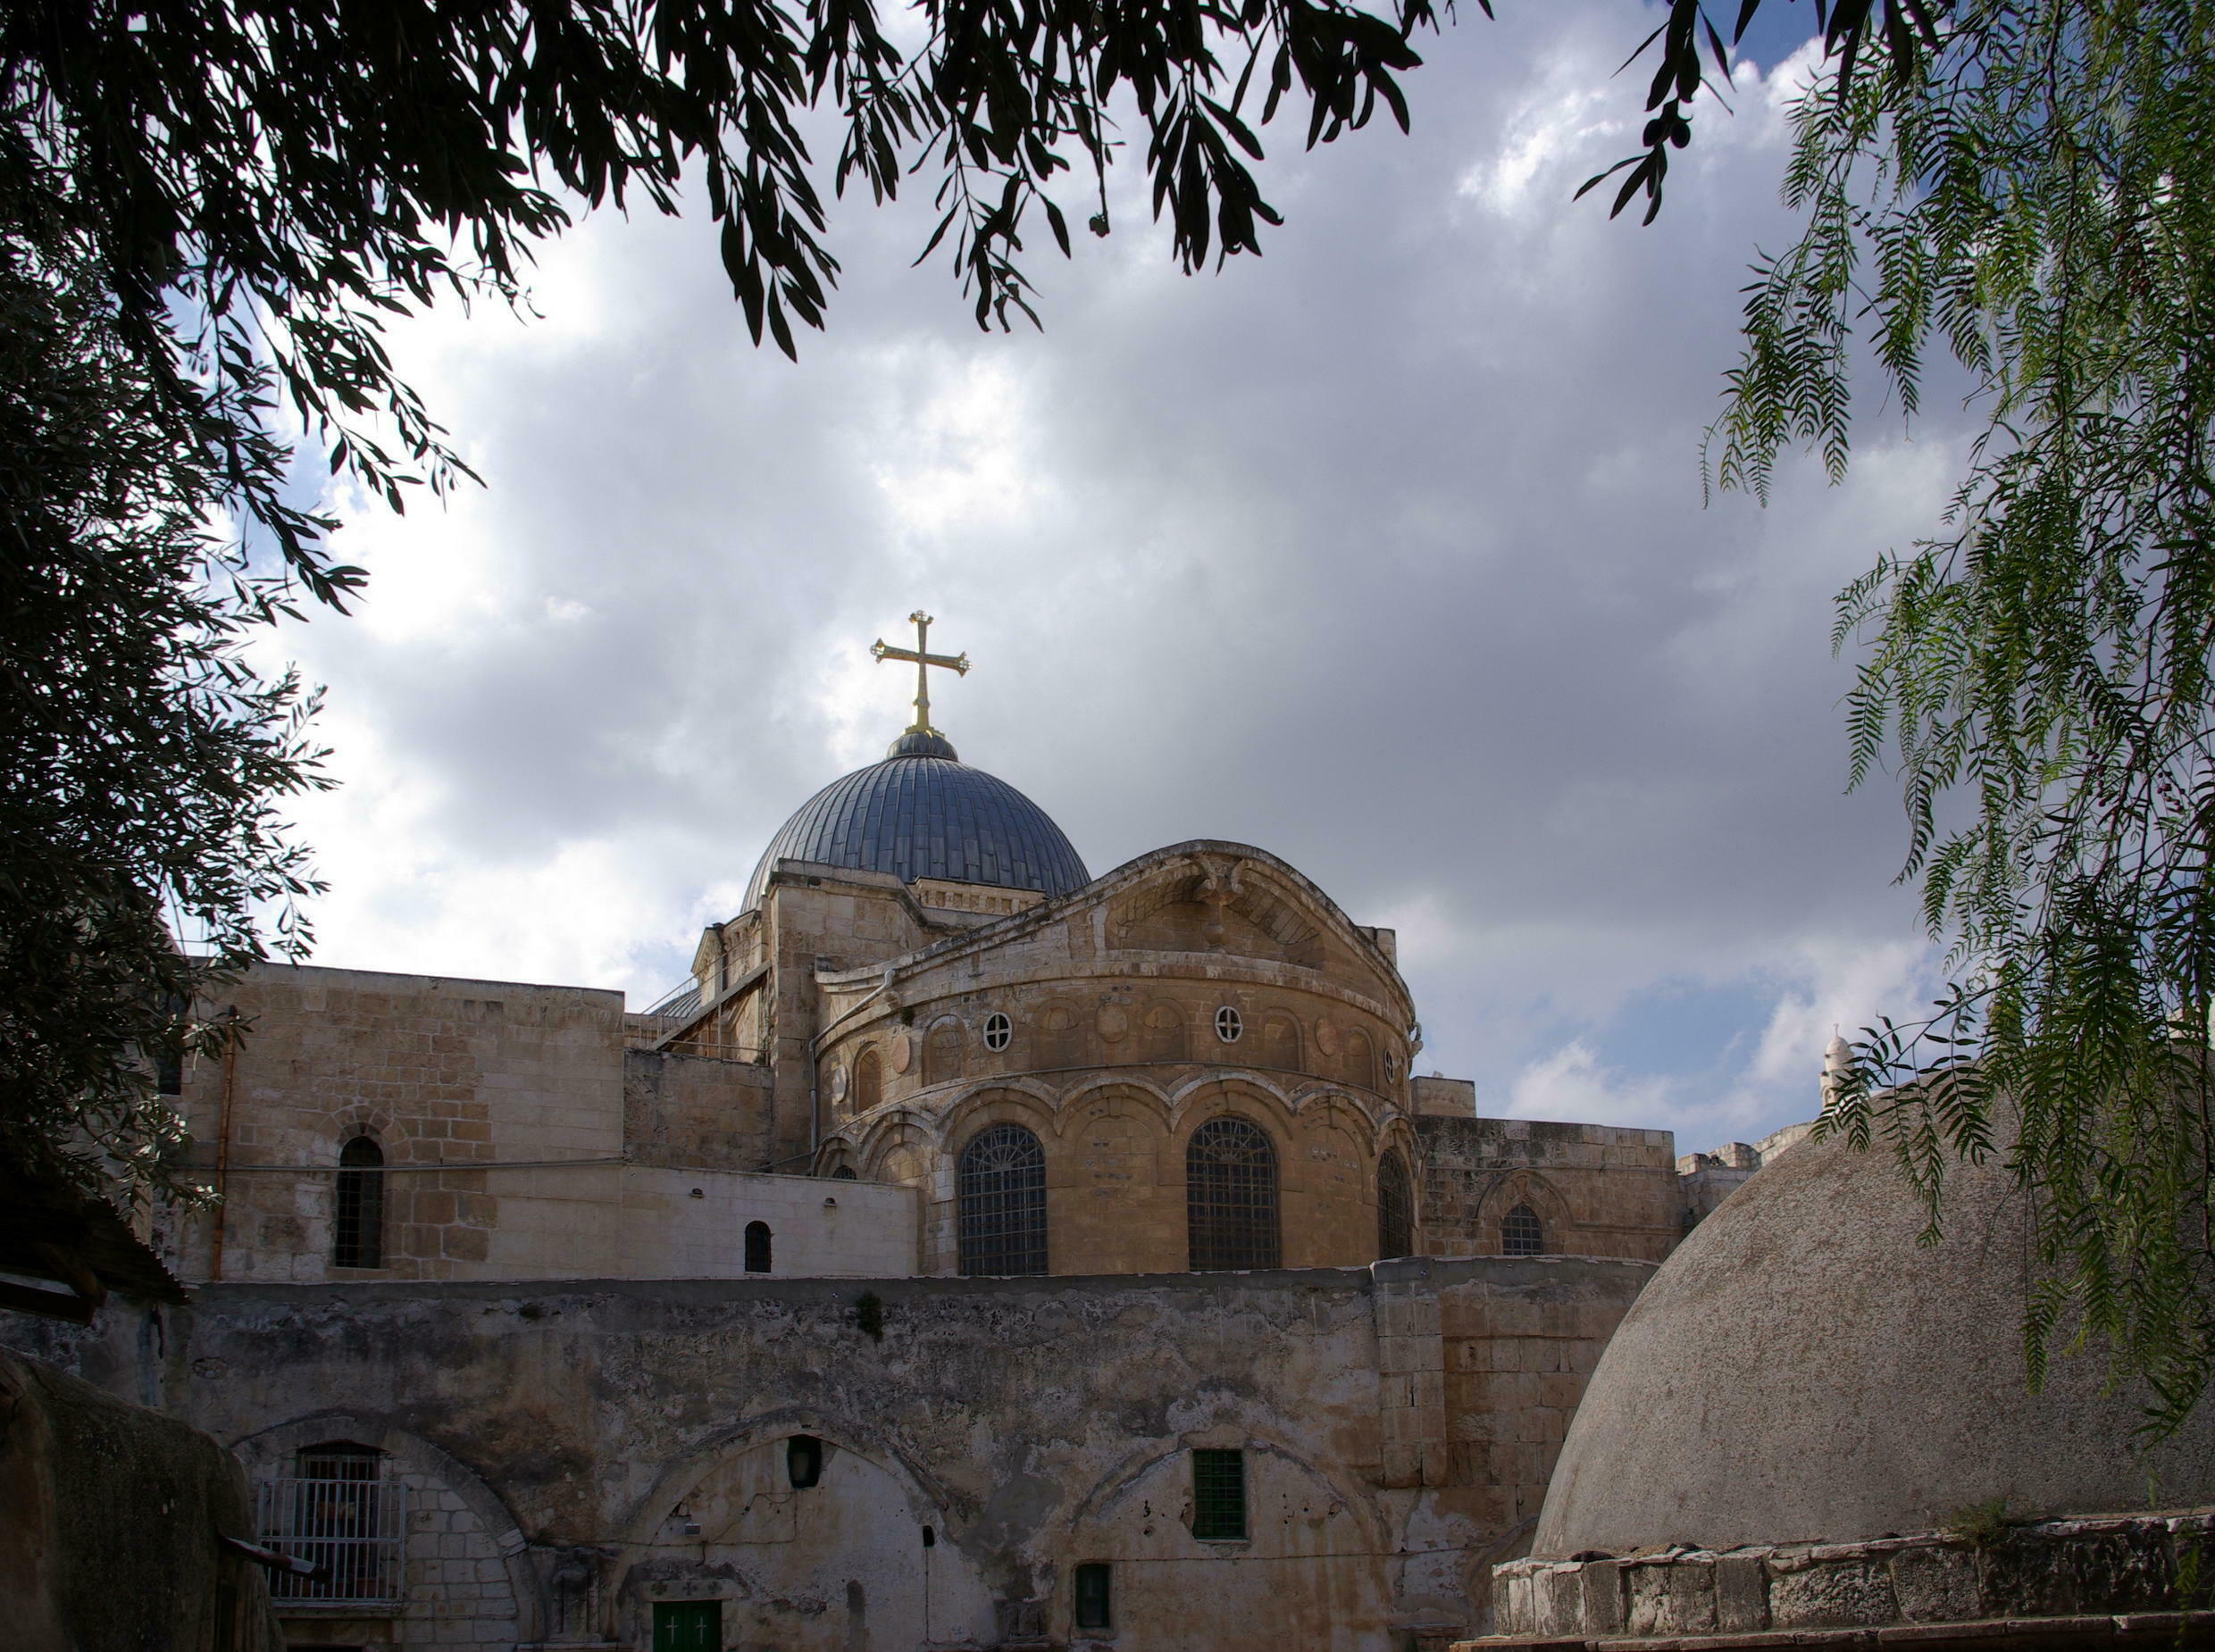 On the roof of the Church of the Holy Sepulchre in Jerusalem.